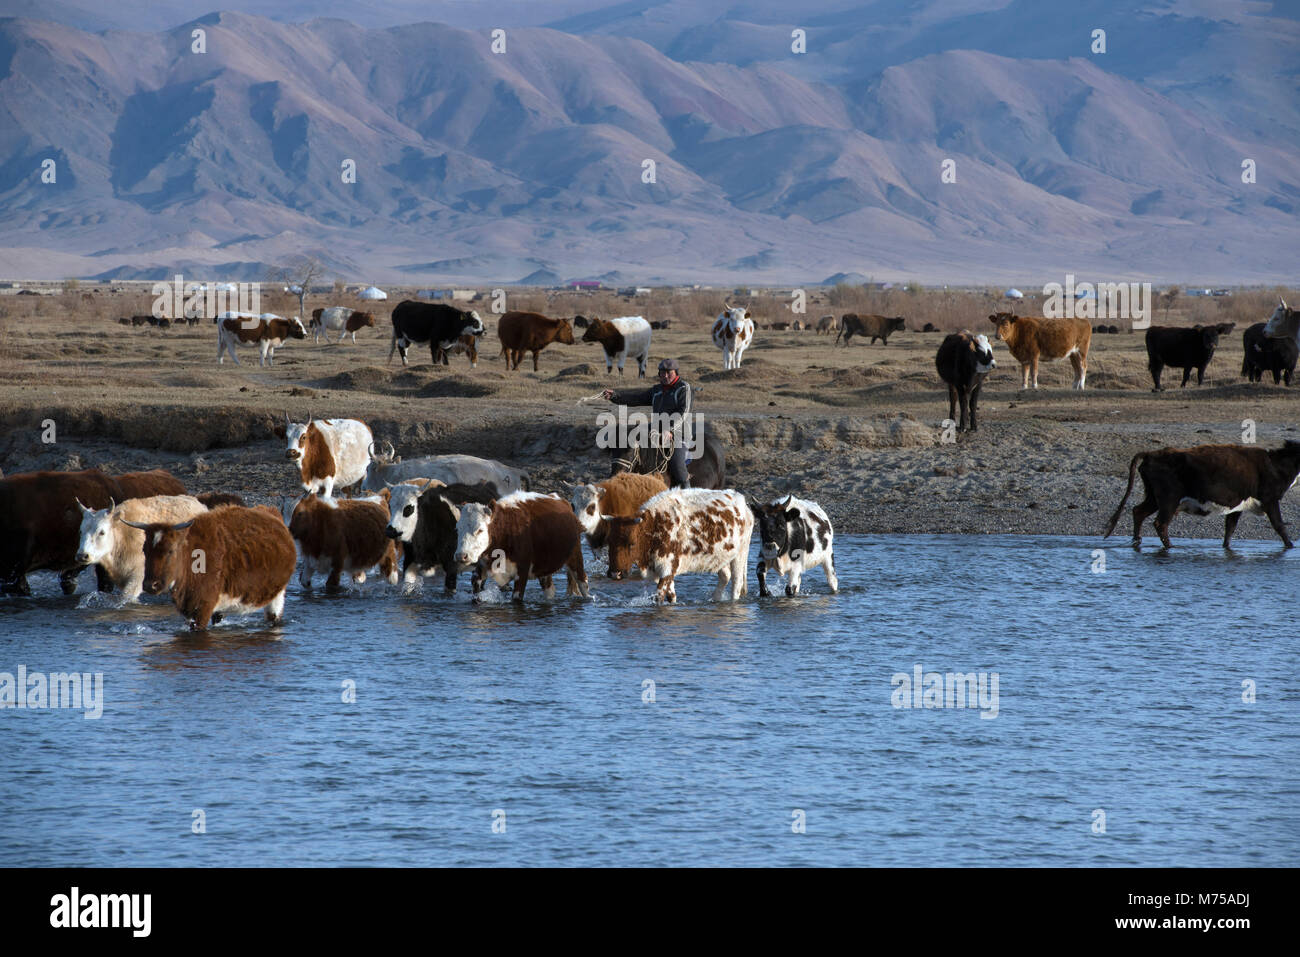 A nomadic Kazakh herder on horseback driving his herd of cattle across a river in the Altai Mountains, western Mongolia. - Stock Image